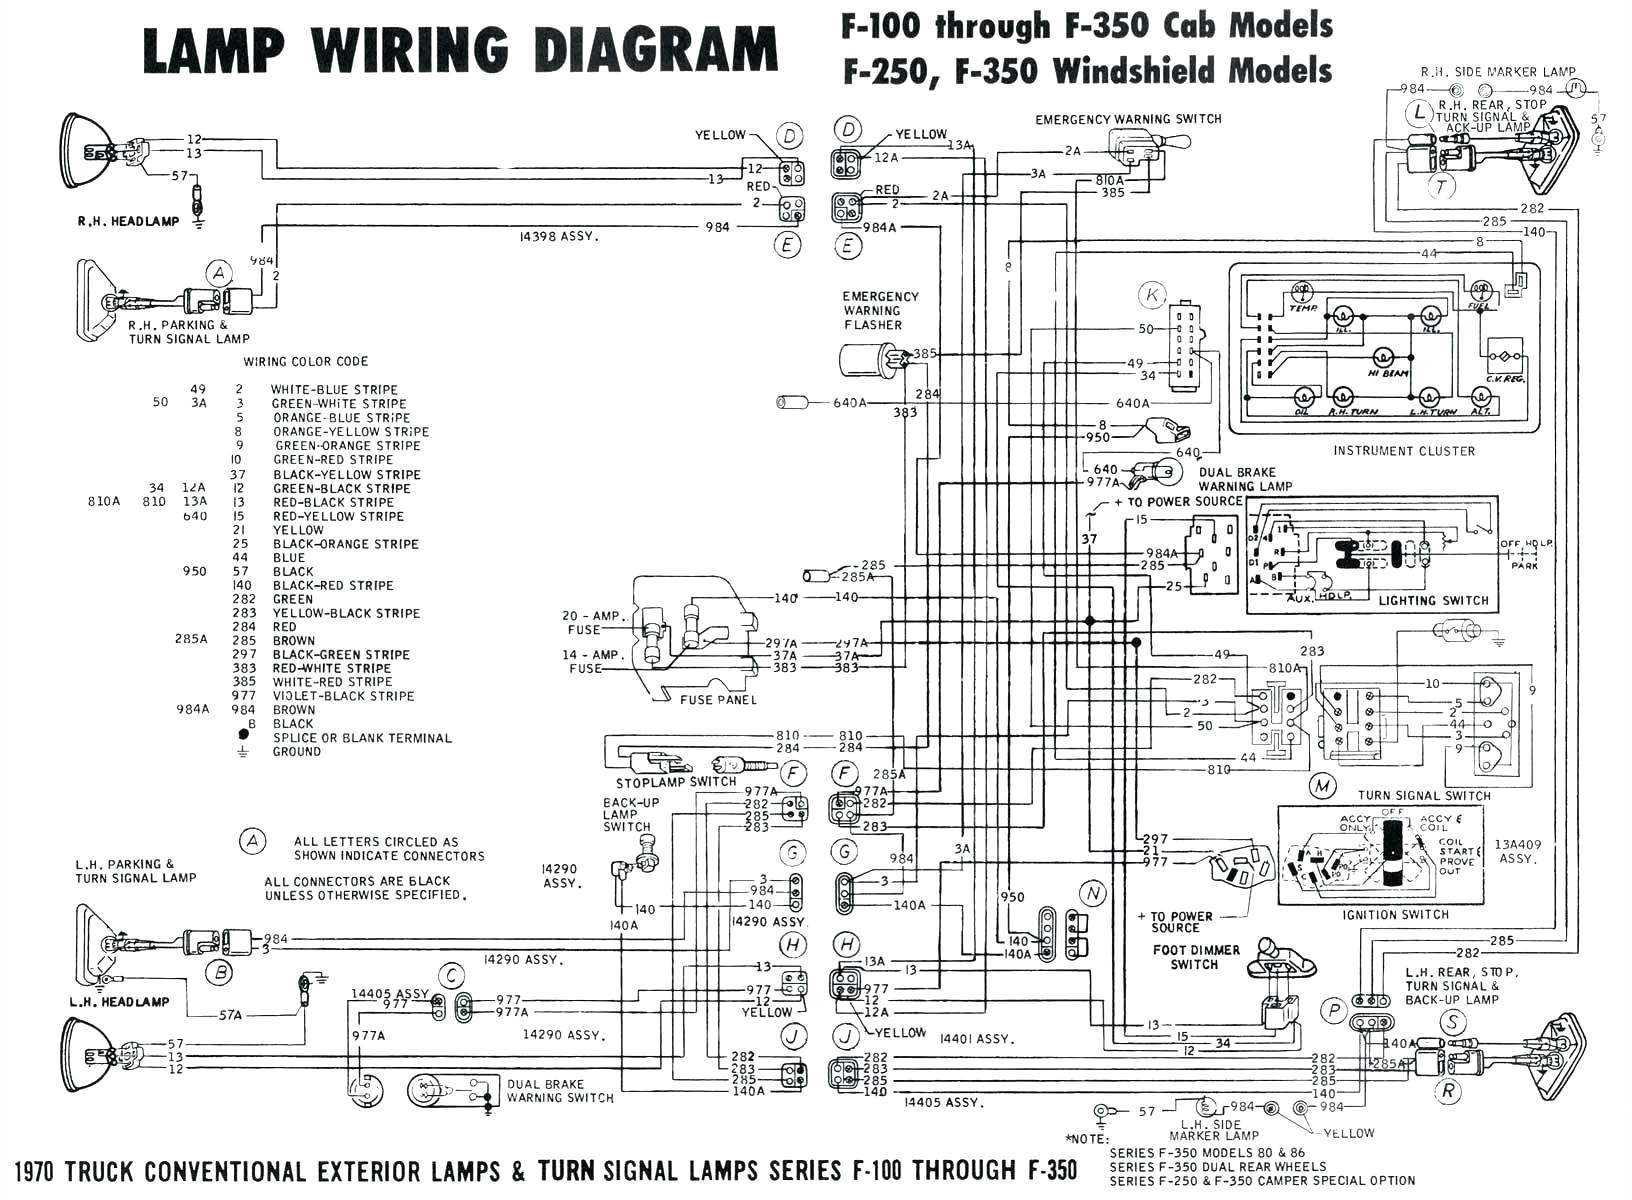 courtesy light wiring diagram elegant 2001 dodge ram ignition switch wiring diagram fresh 2019 wiring